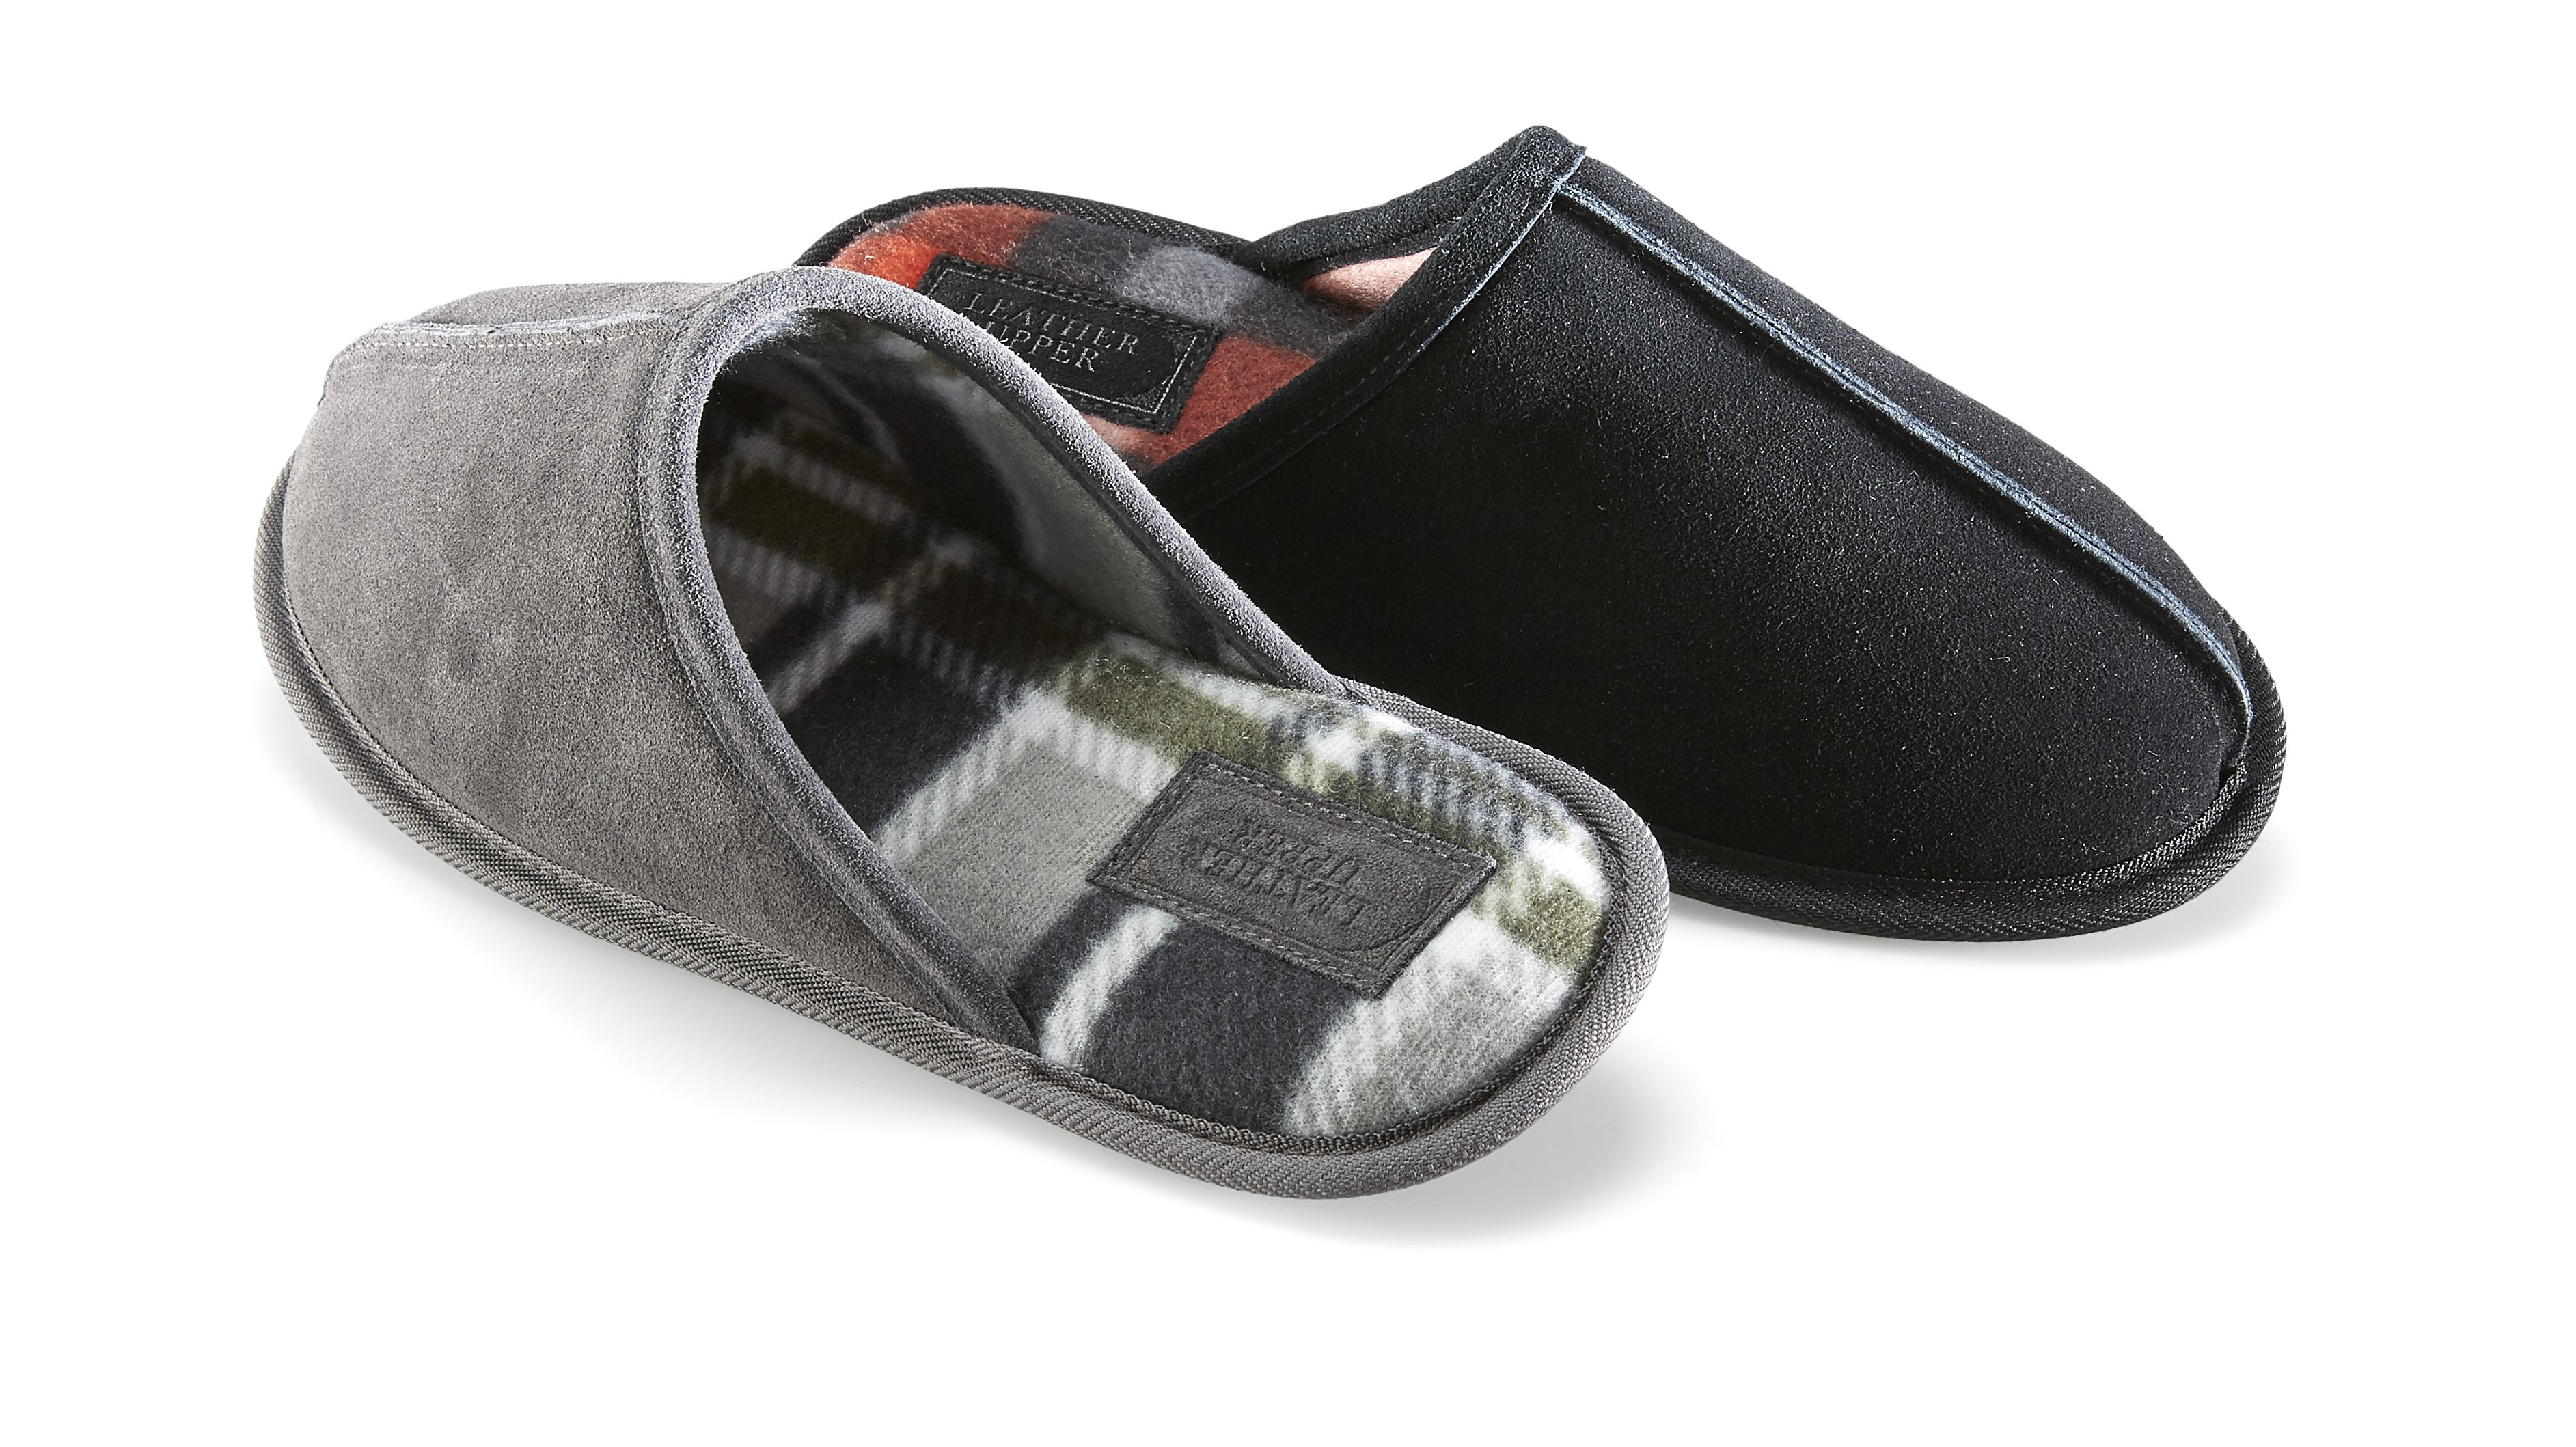 Kmart Men's Suede Slide Slippers, Size 7-13, RRP$17.00